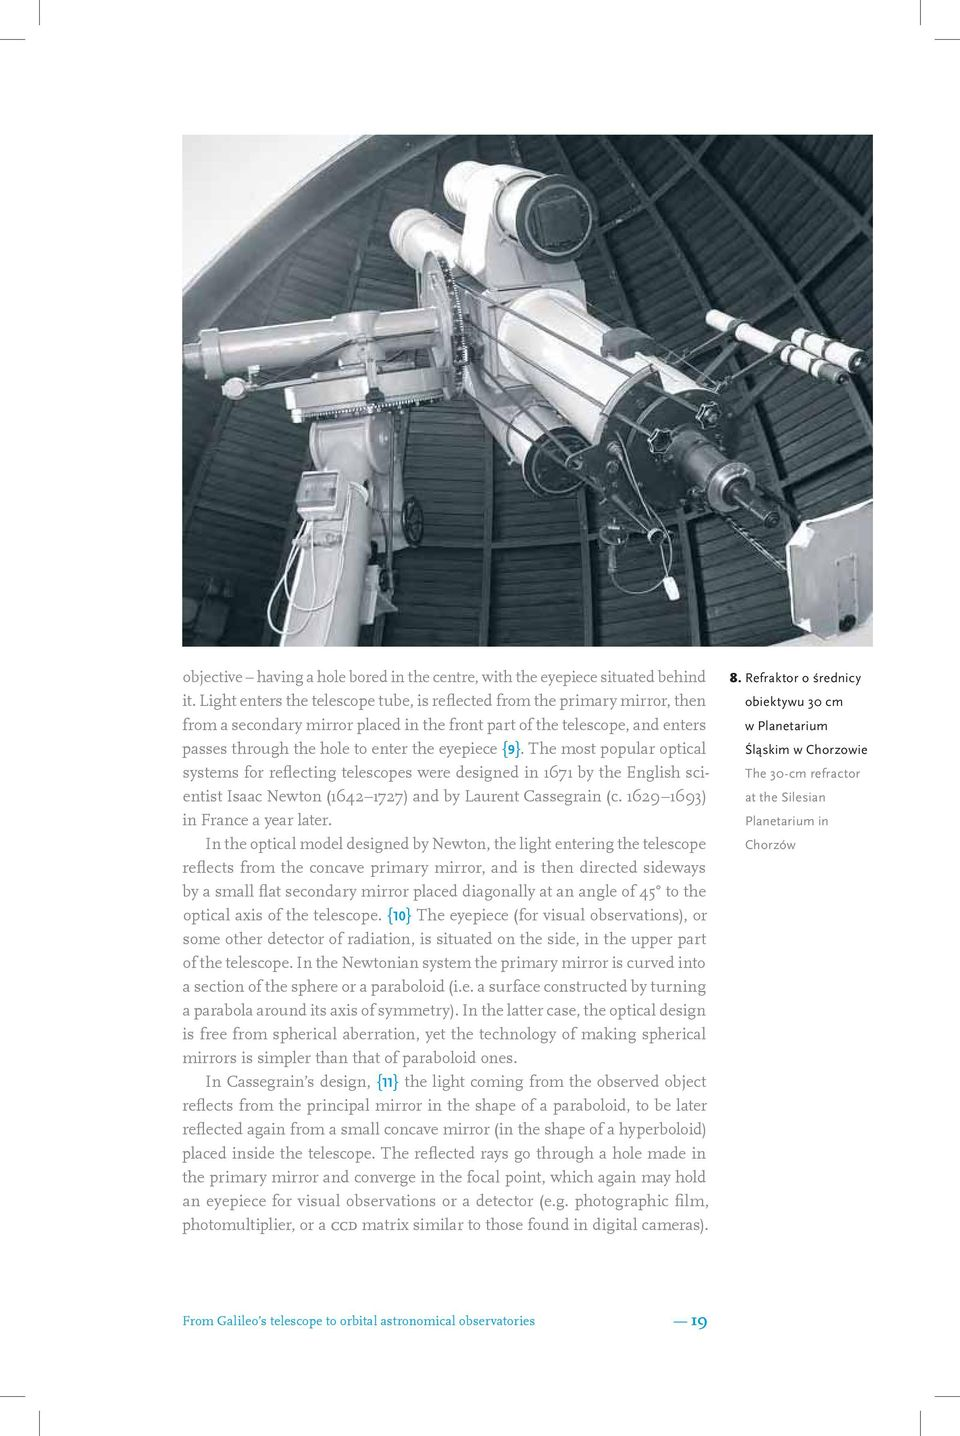 {9}. The most popular optical systems for reflecting telescopes were designed in 1671 by the English scientist Isaac Newton (1642 1727) and by Laurent Cassegrain (c. 1629 1693) in France a year later.